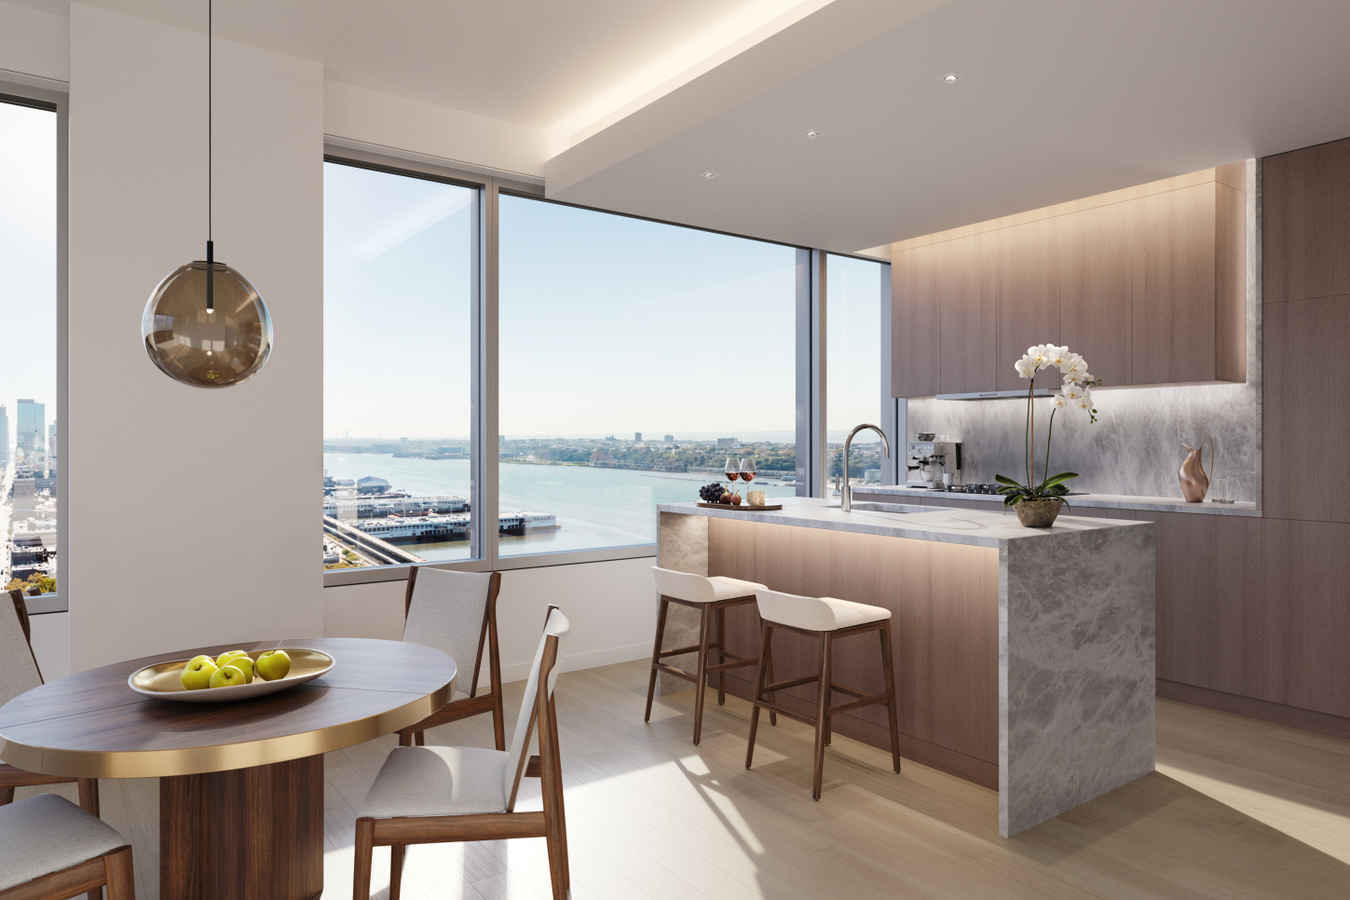 Apartment for sale at 611 West 56th Street, Apt 5-B